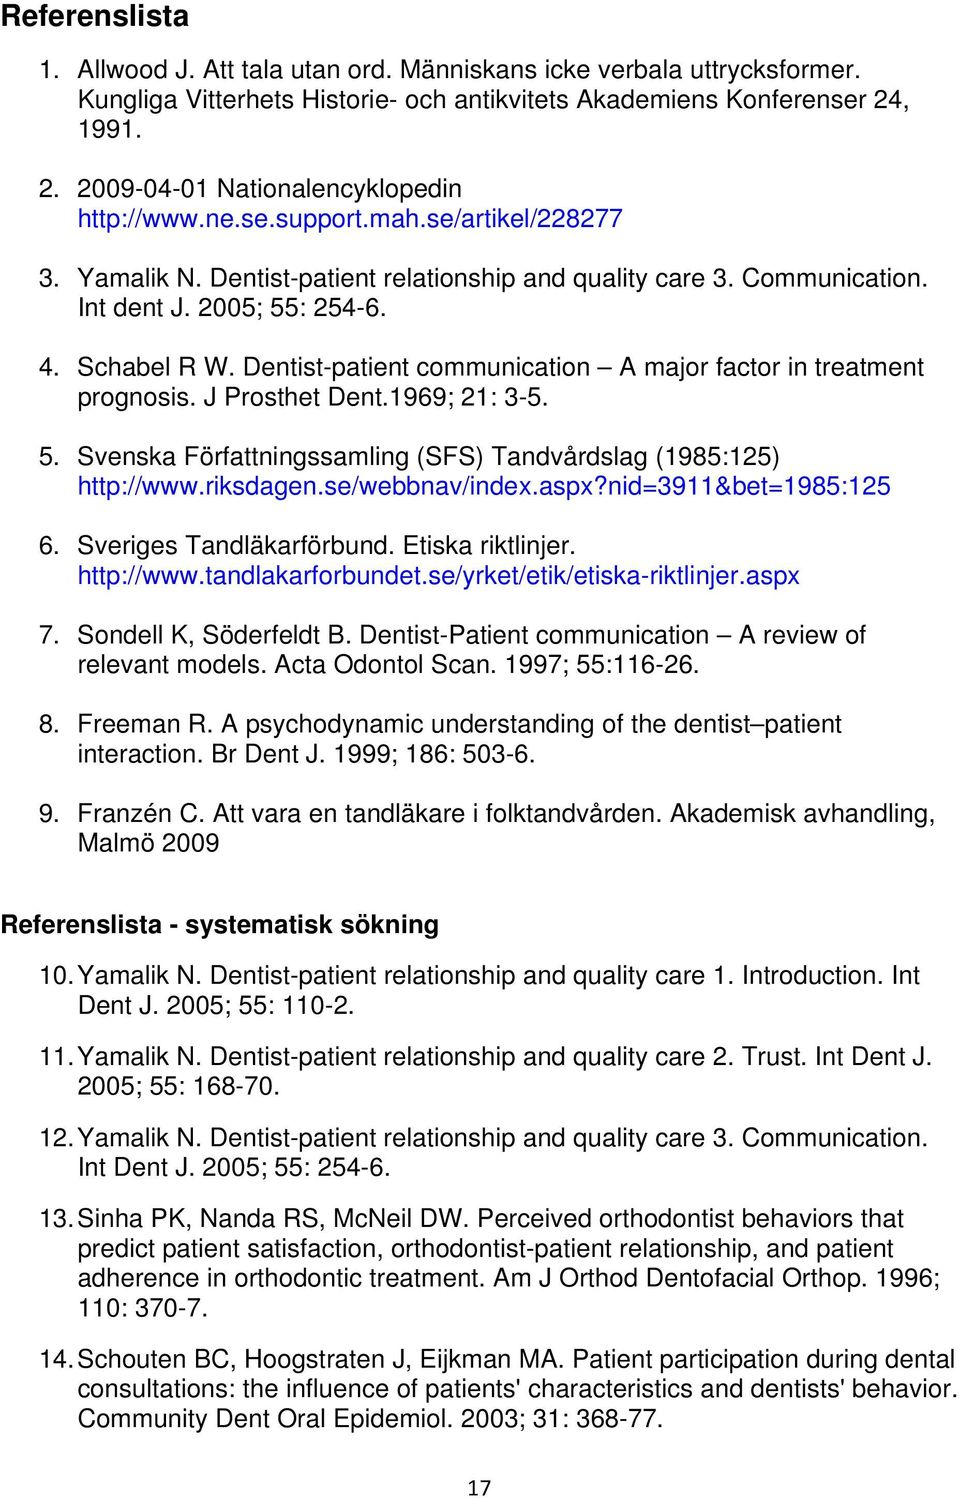 Schabel R W. Dentist-patient communication A major factor in treatment prognosis. J Prosthet Dent.1969; 21: 3-5. 5. Svenska Författningssamling (SFS) Tandvårdslag (1985:125) http://www.riksdagen.